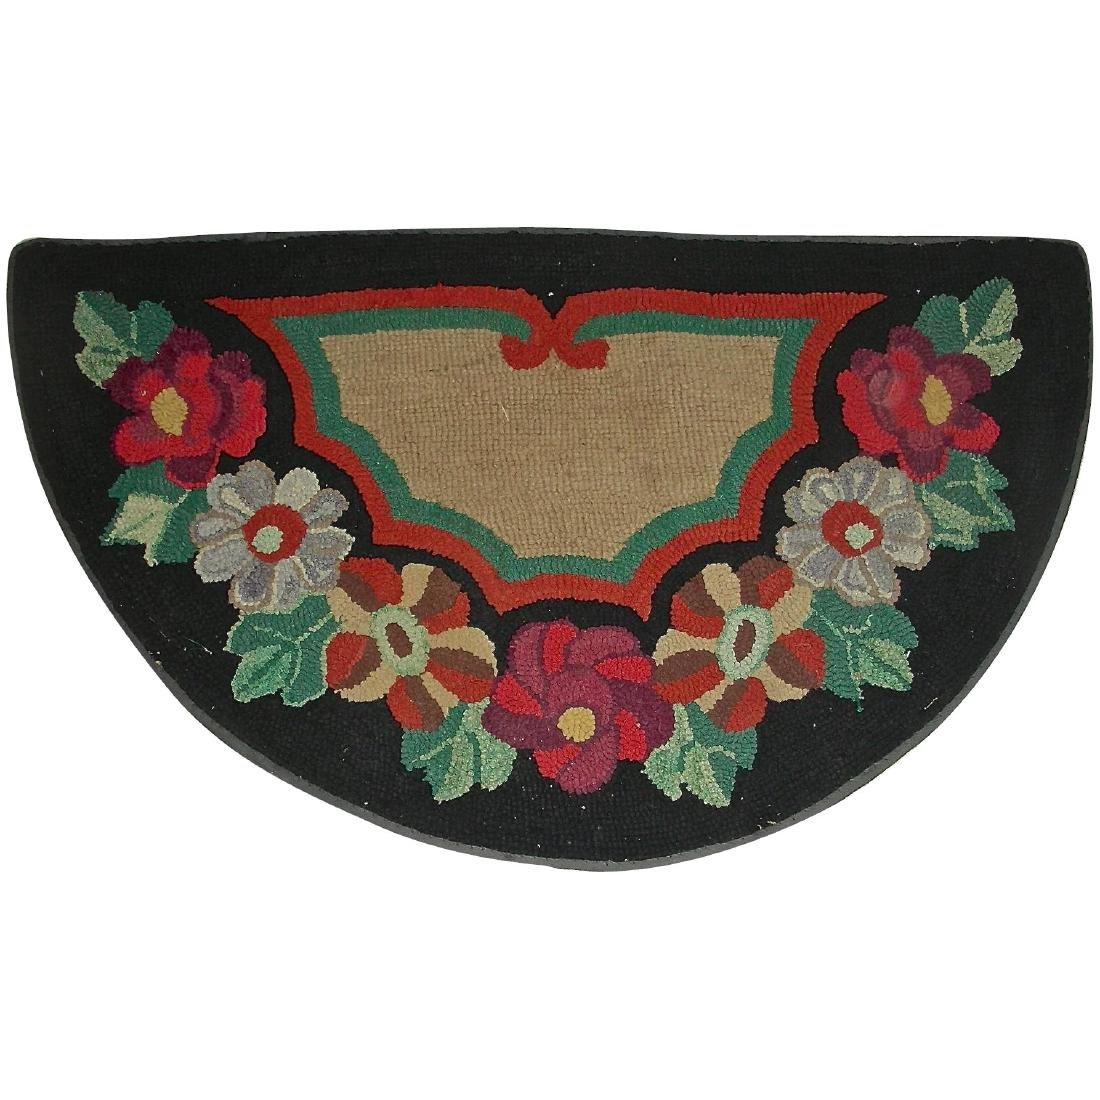 1/2 Round Floral Hooked Rug, c. 1930's